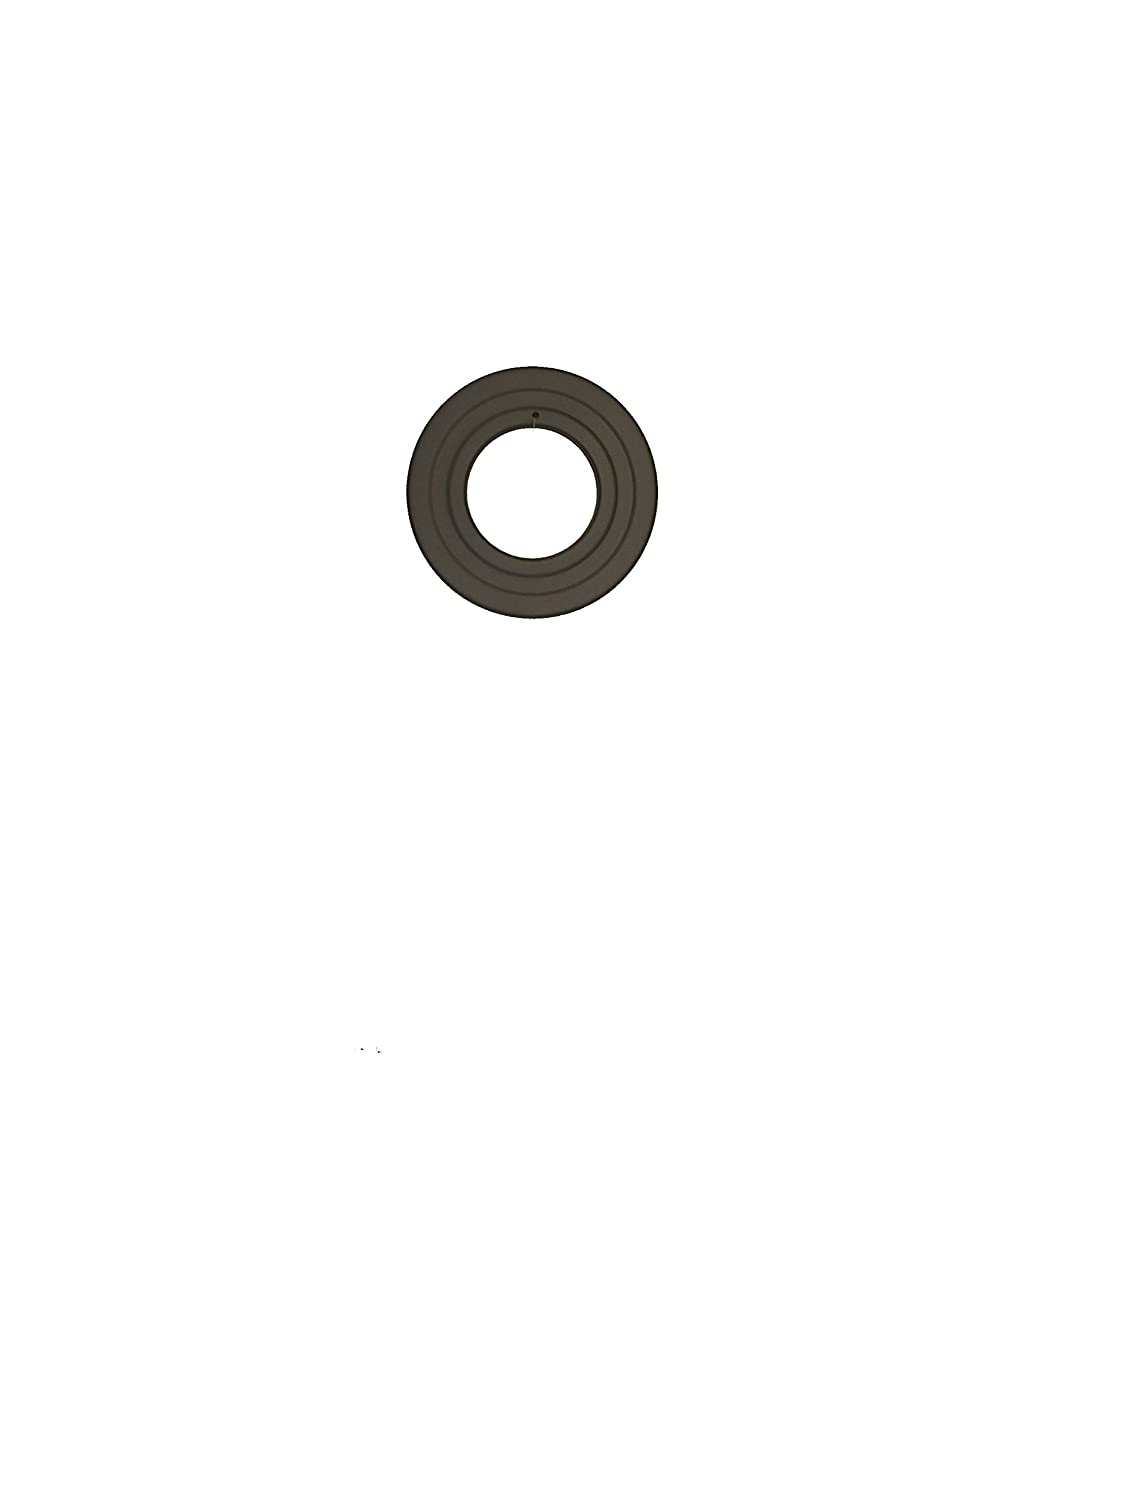 Lanzzas Pellet Pell Etrauch Pipe Pellet Stove Pipe Pellet Stove Pipe Rosette Trim 30mm Grey ø 80mm